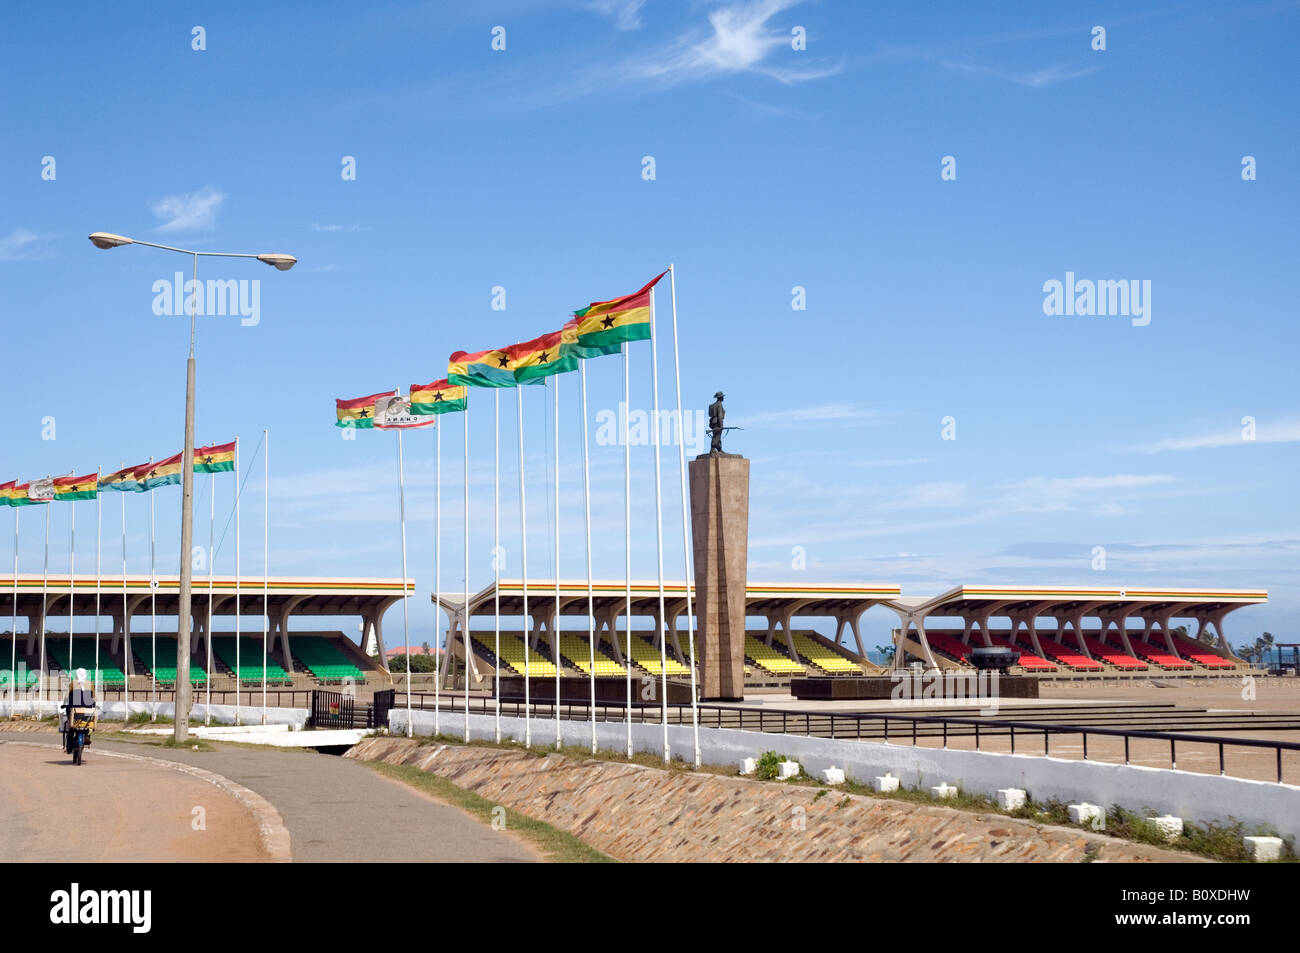 Statue of the unknown soldier Independence Square, Accra, Ghana - Stock Image